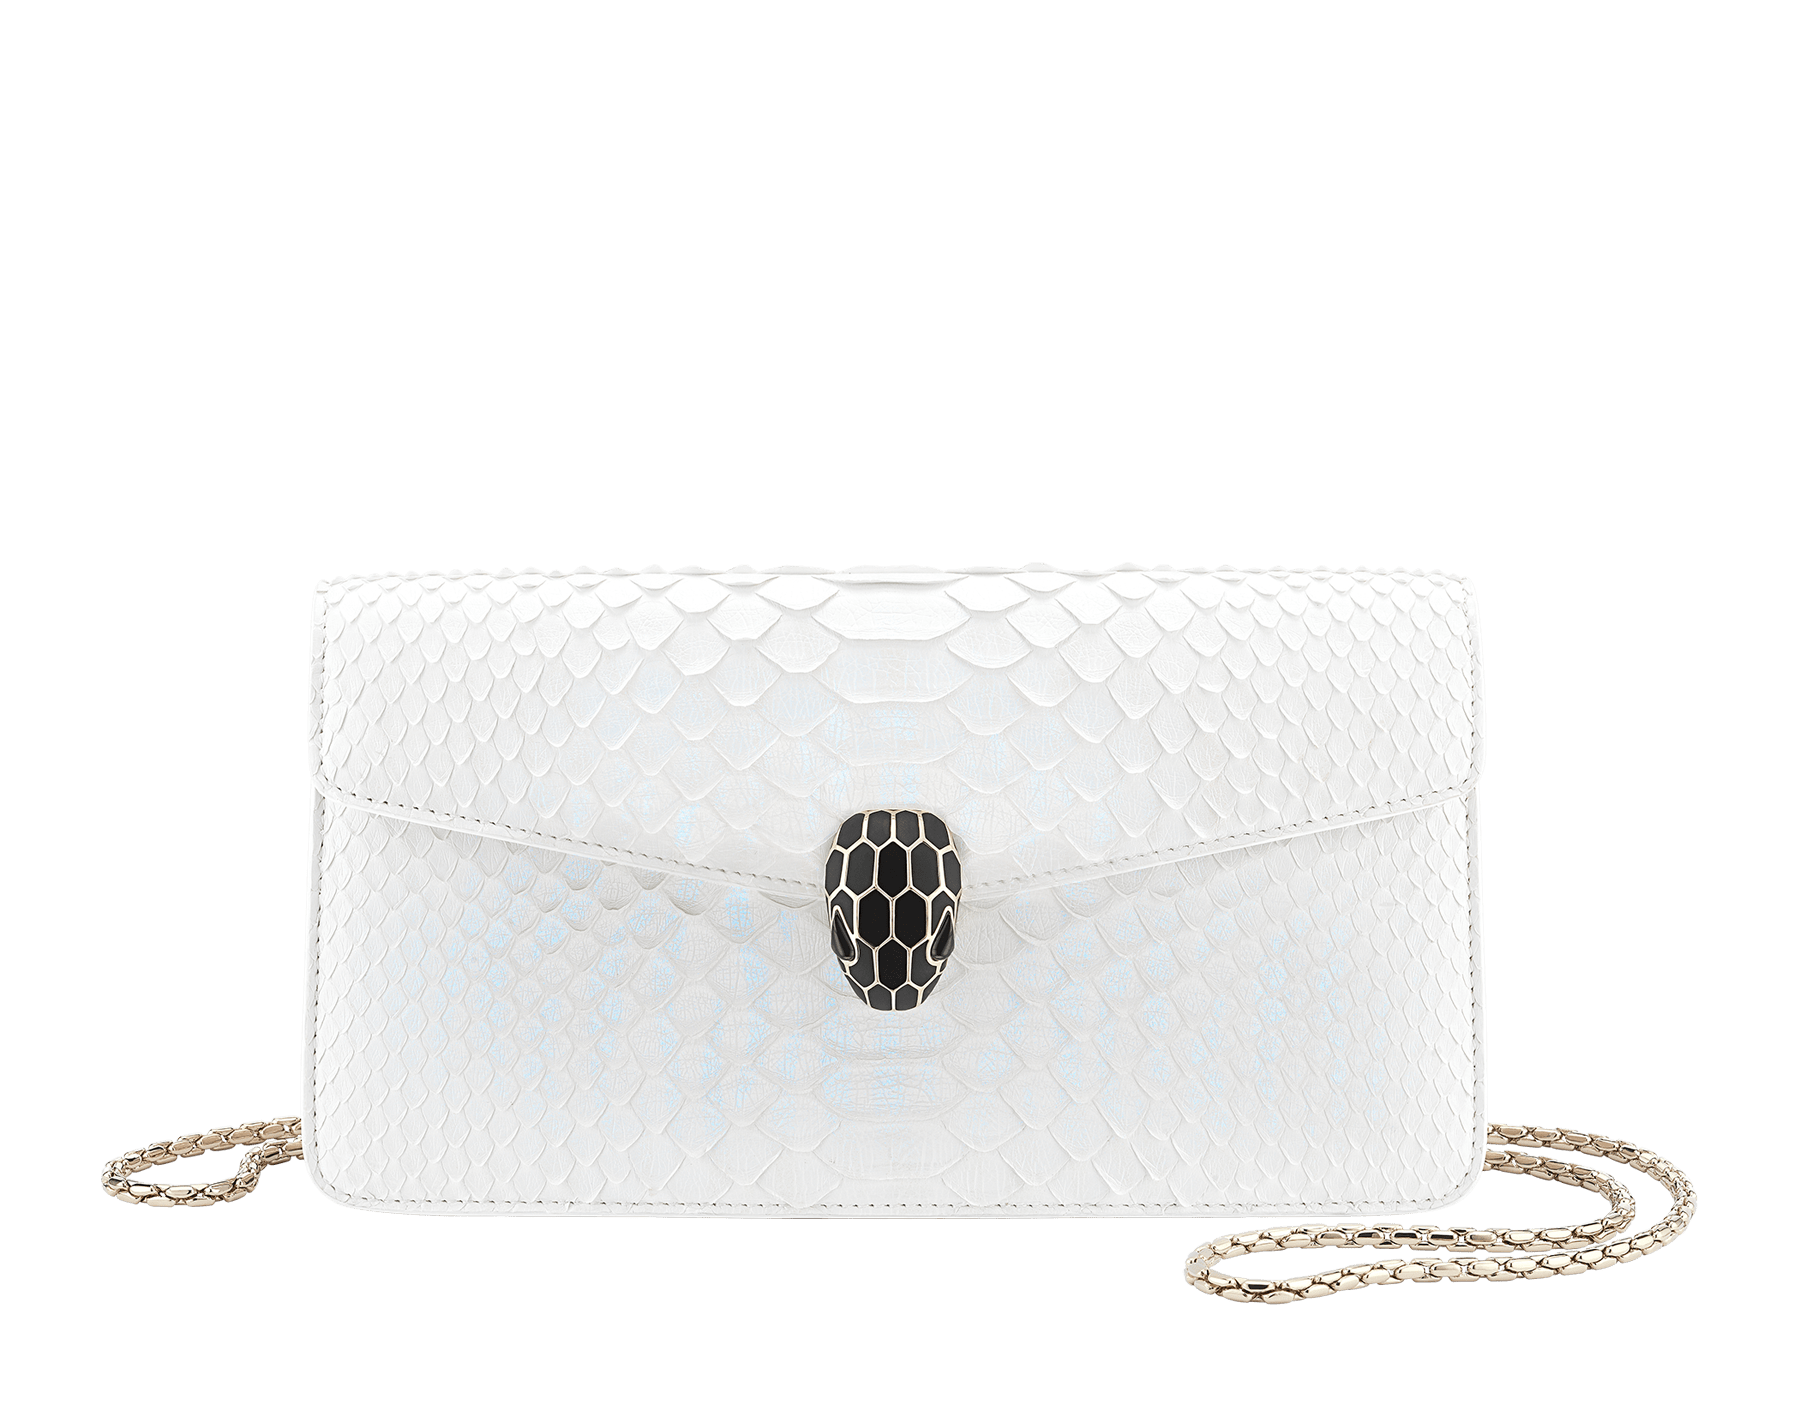 """""""Serpenti Forever"""" shoulder bag in white agate python skin with an iridescent finishing. Iconic snake head closure in light gold plated brass enriched with matte black and shiny white agate enamel and black onyx eyes. 289774 image 1"""